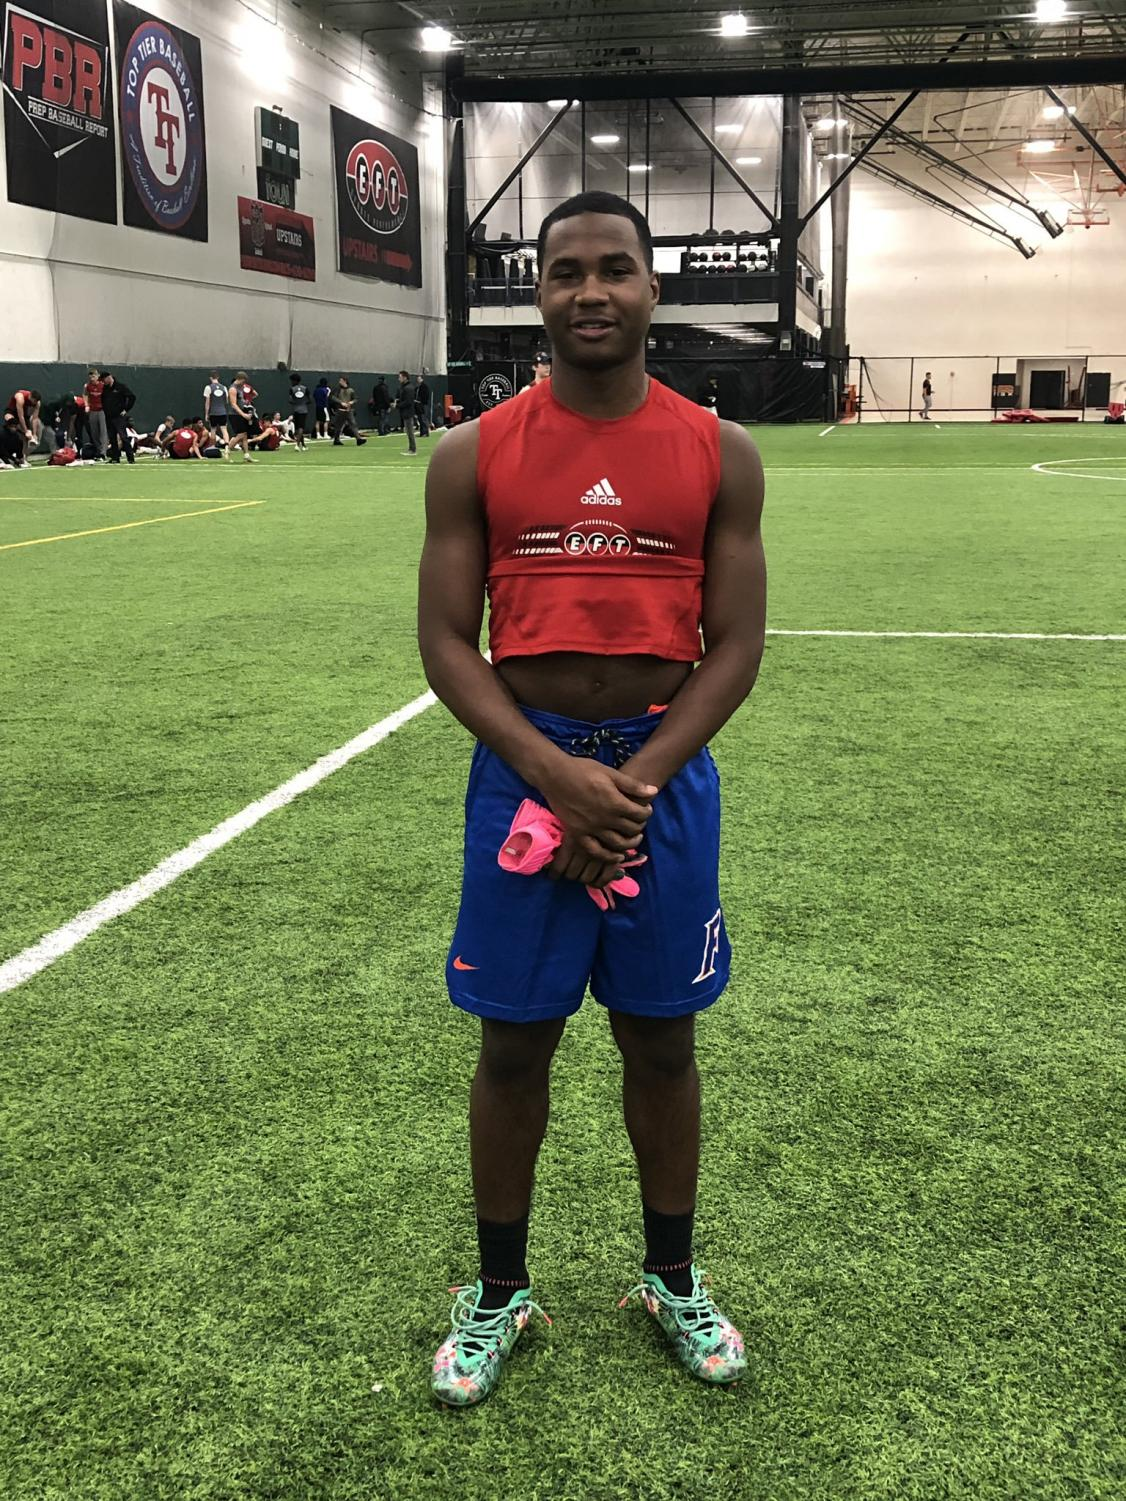 Fourteen year-old Illinois Football prospect, Jaylon Mckenzie passed away Saturday due to complications from a gunshot wound.